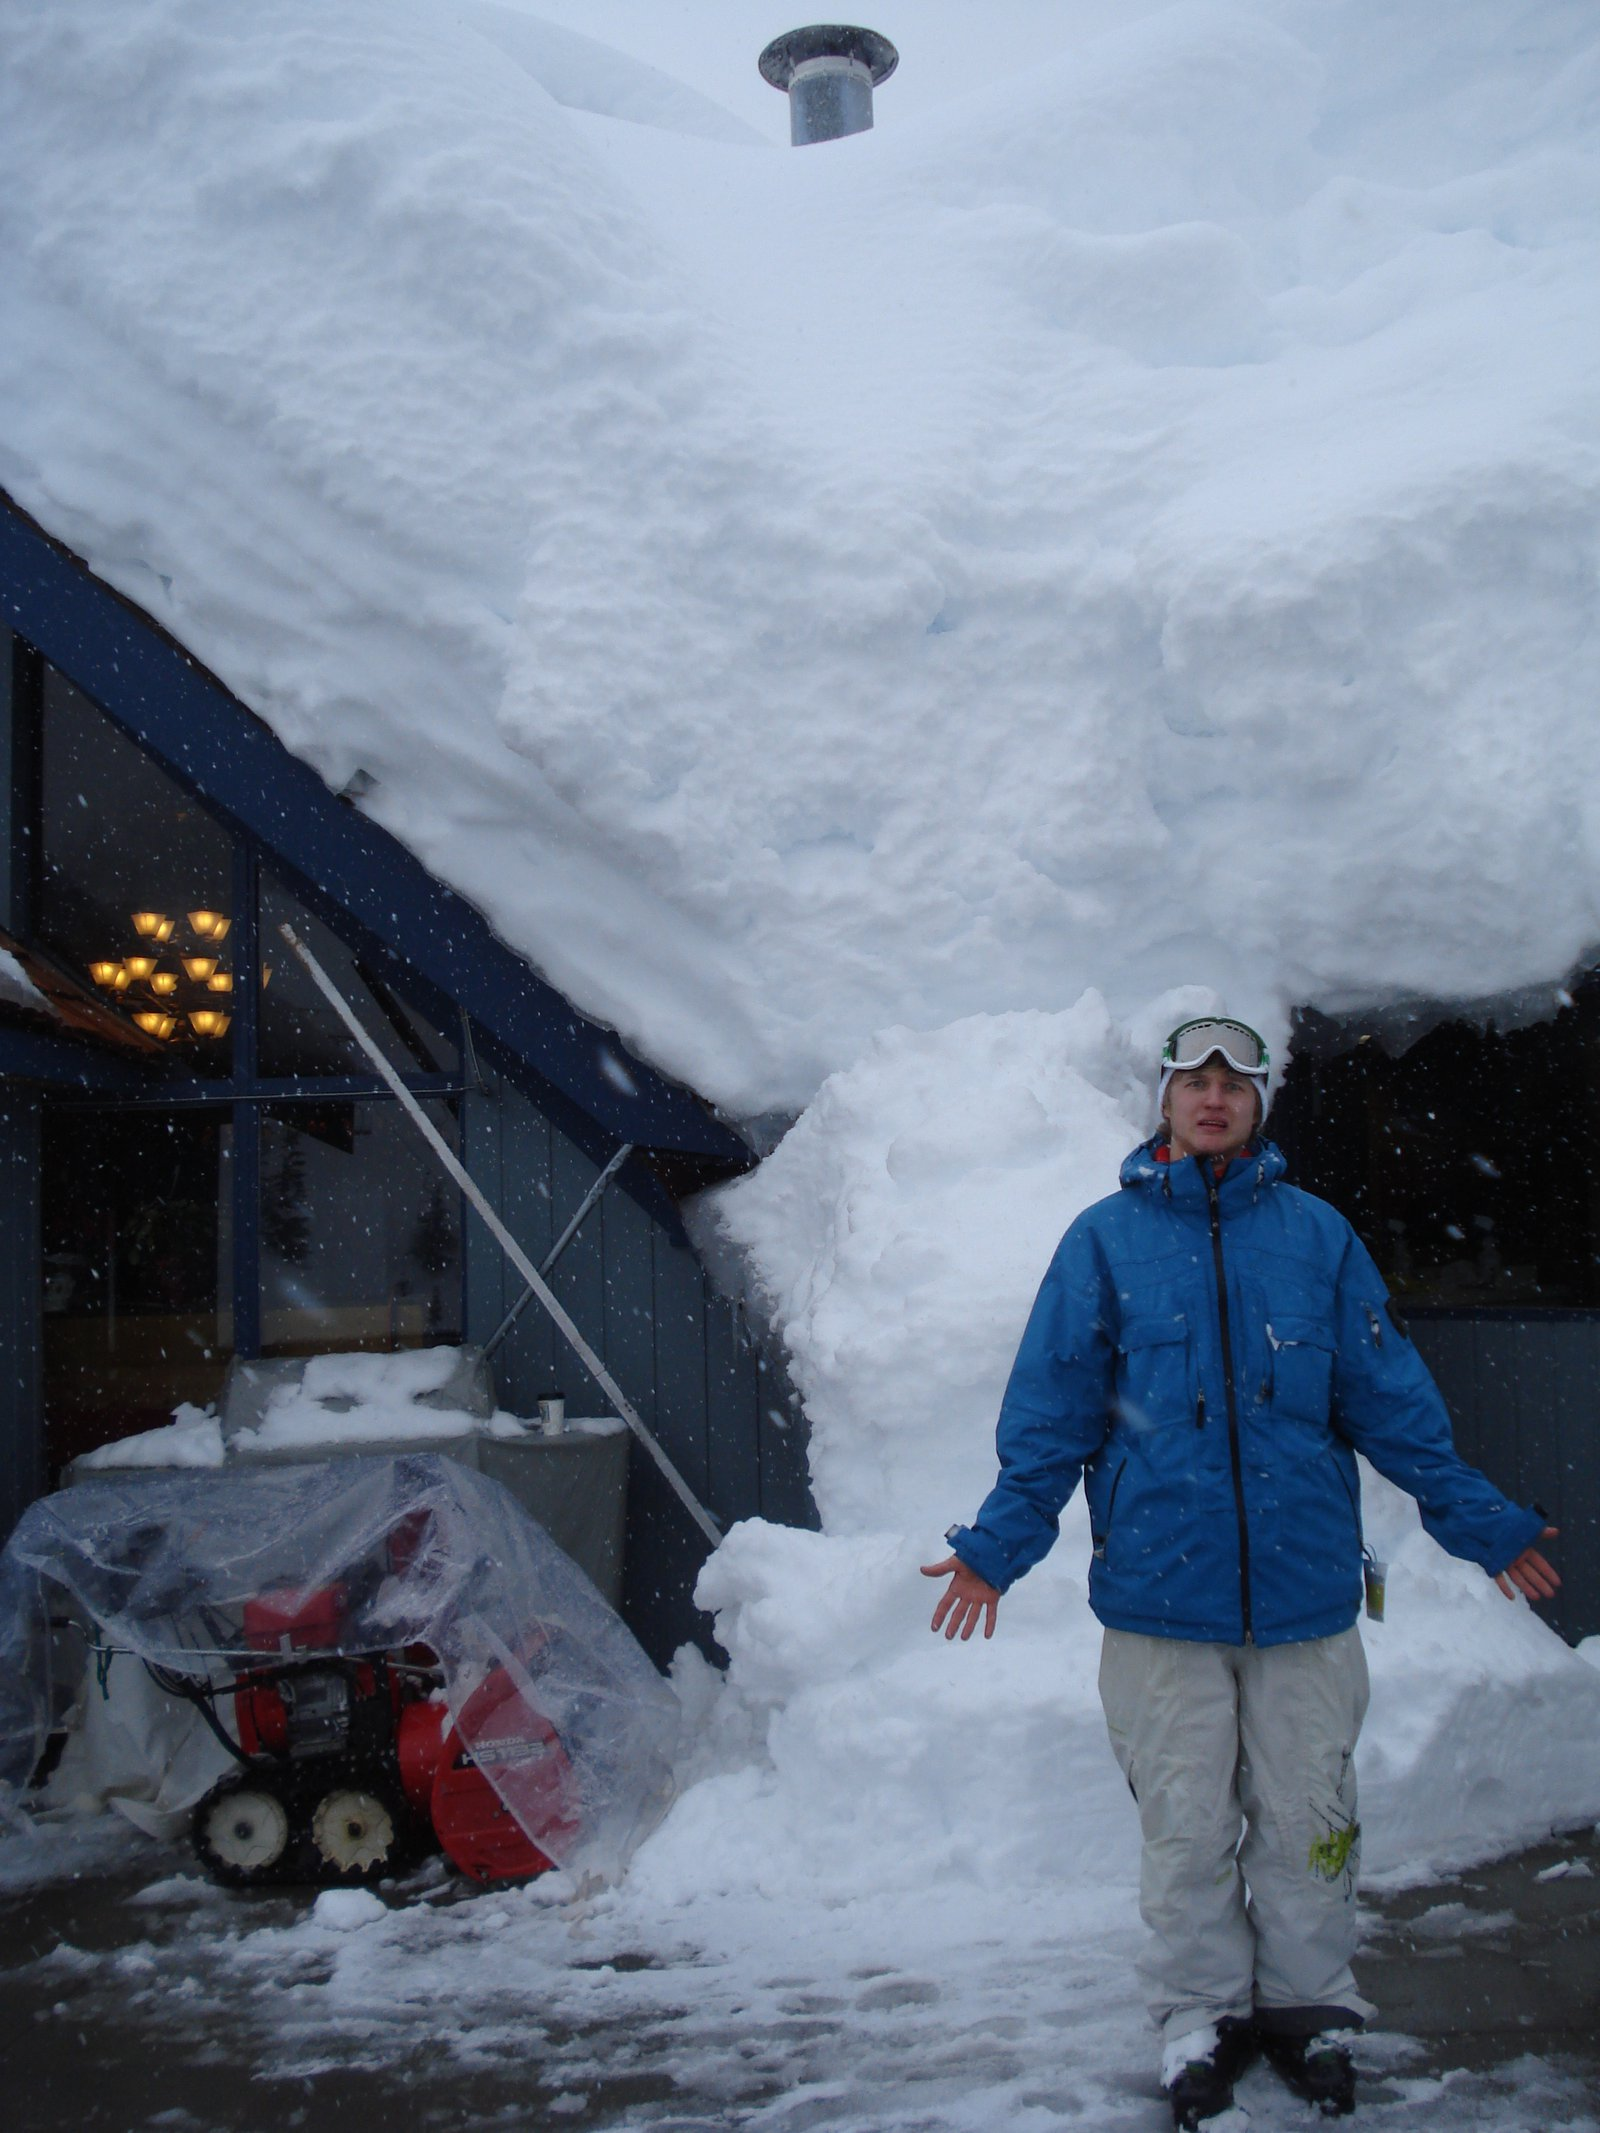 101cm of new snow